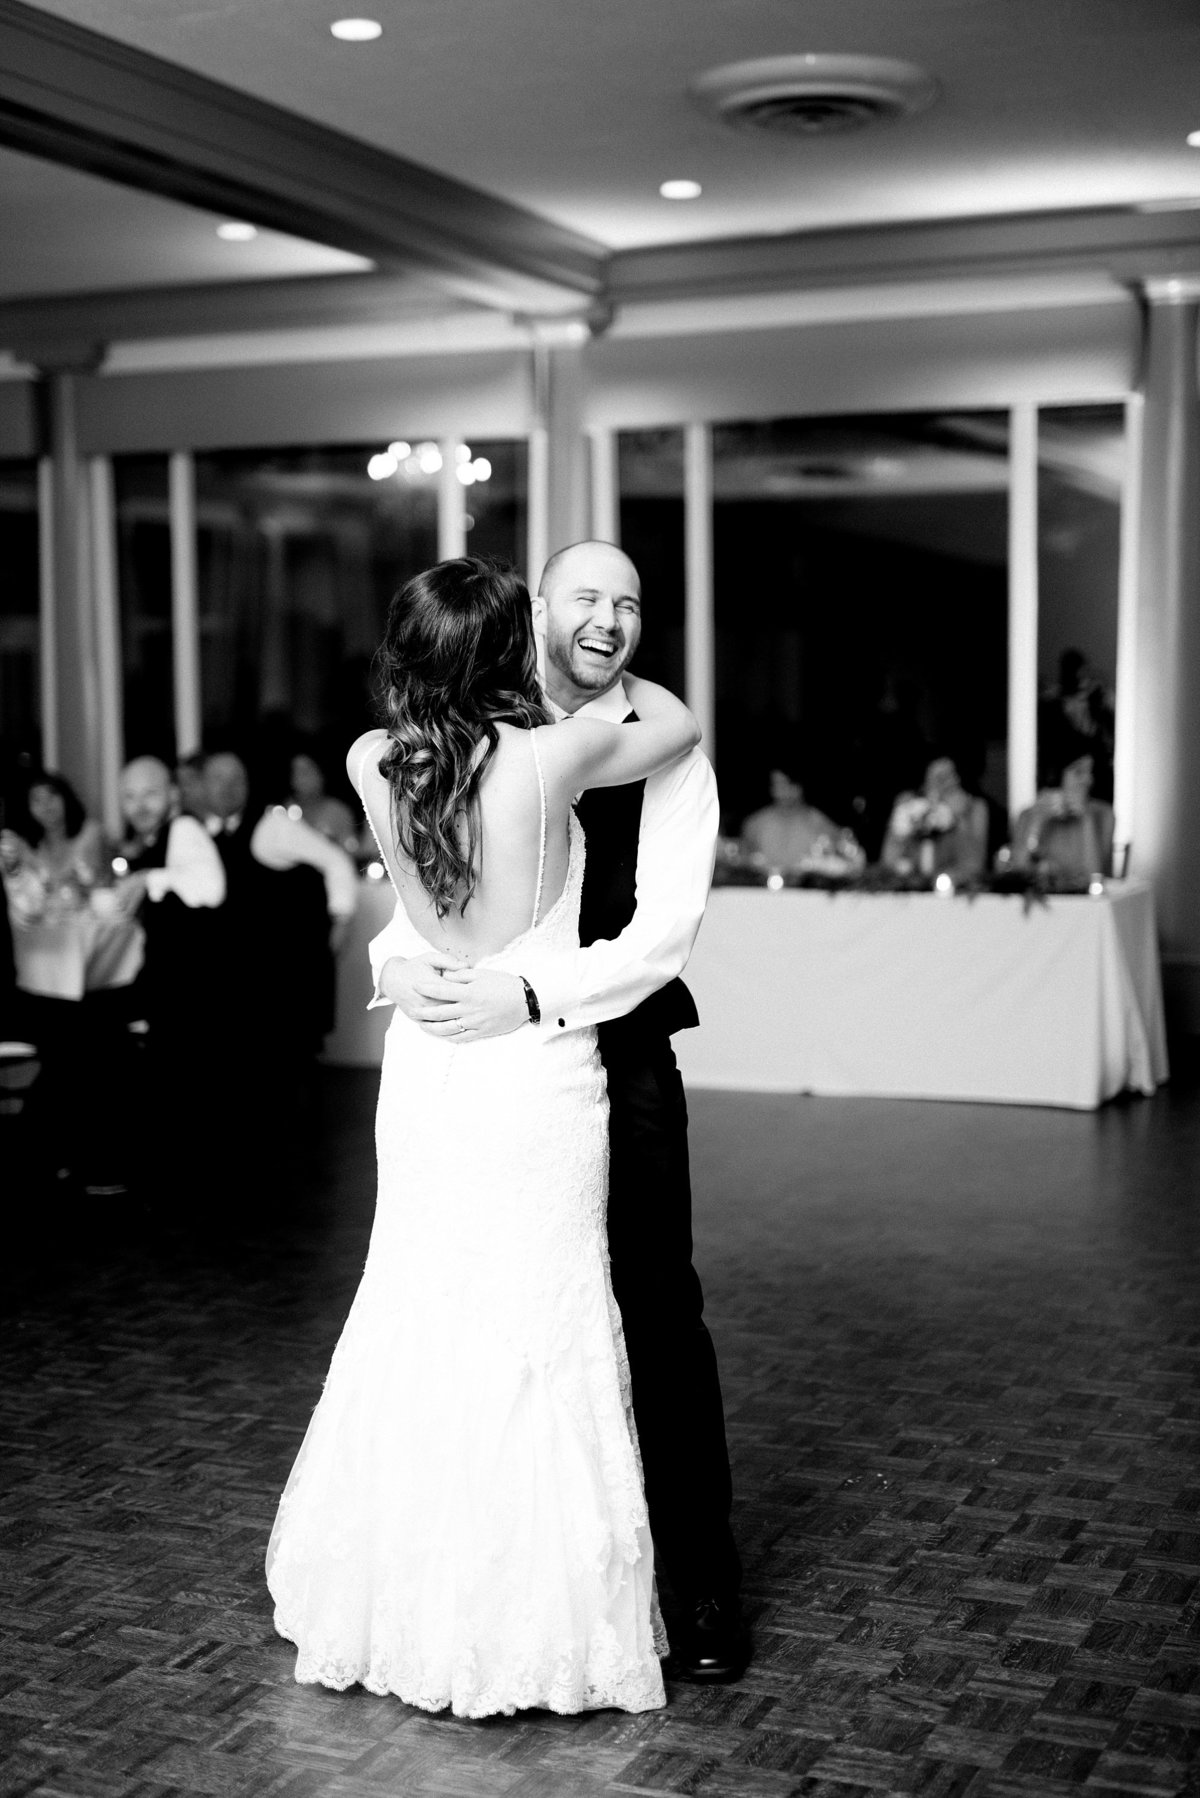 Shuster-Wedding-Grosse-Pointe-War-Memorial-Breanne-Rochelle-Photography160